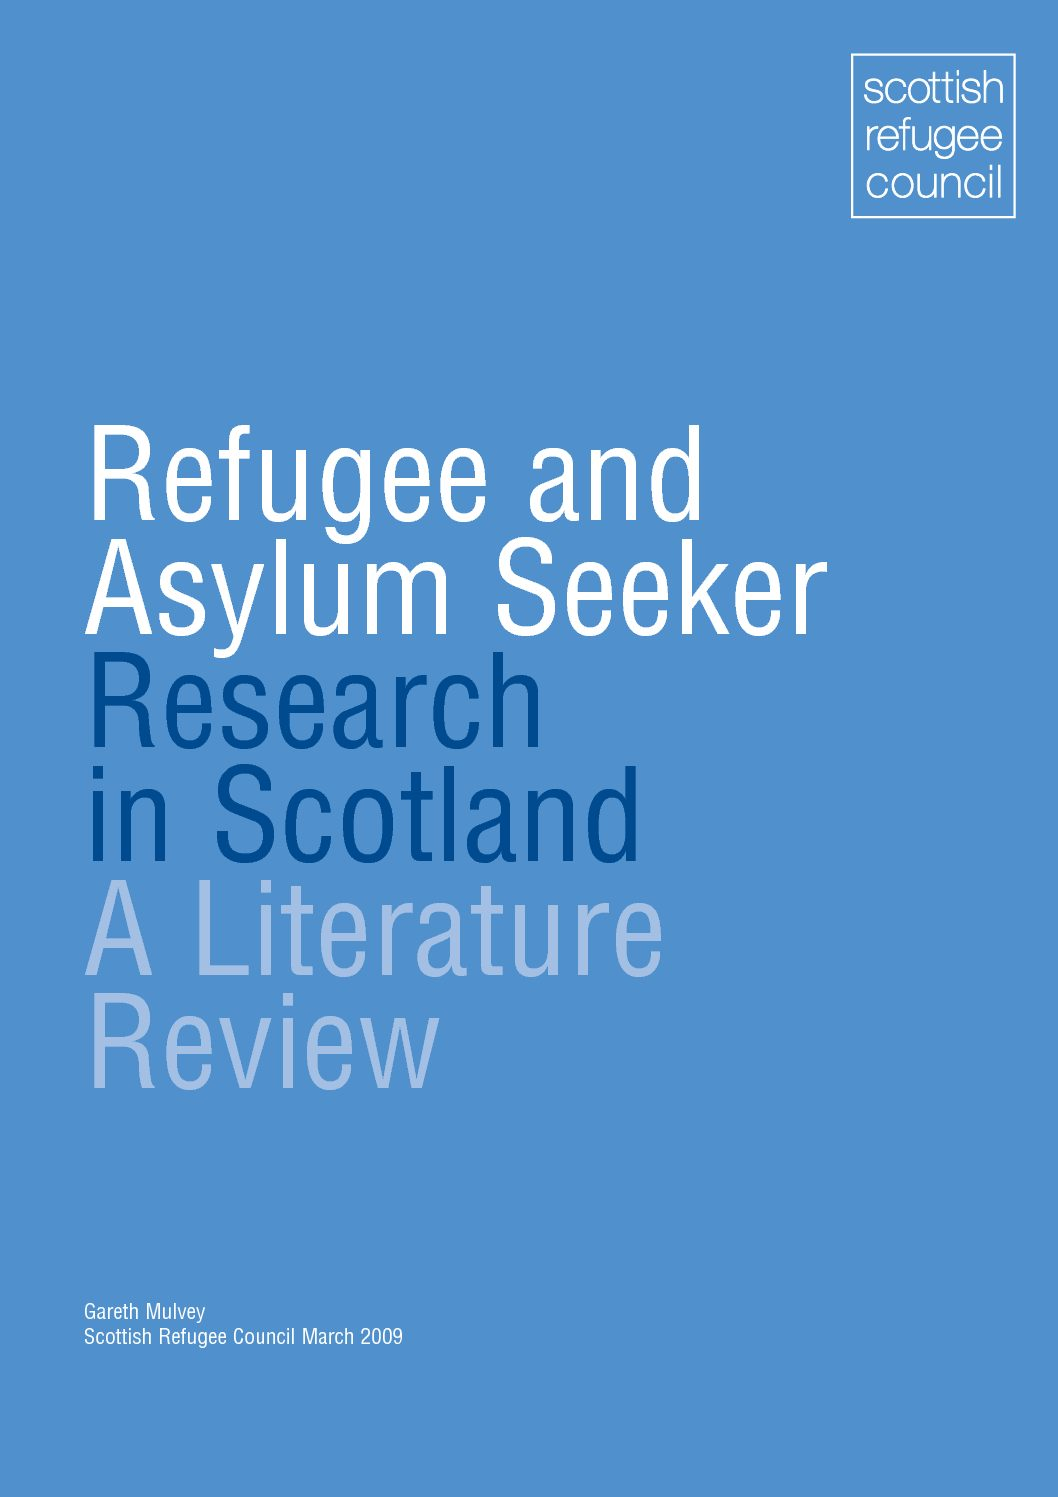 Literature_Review_2009-March-pdf